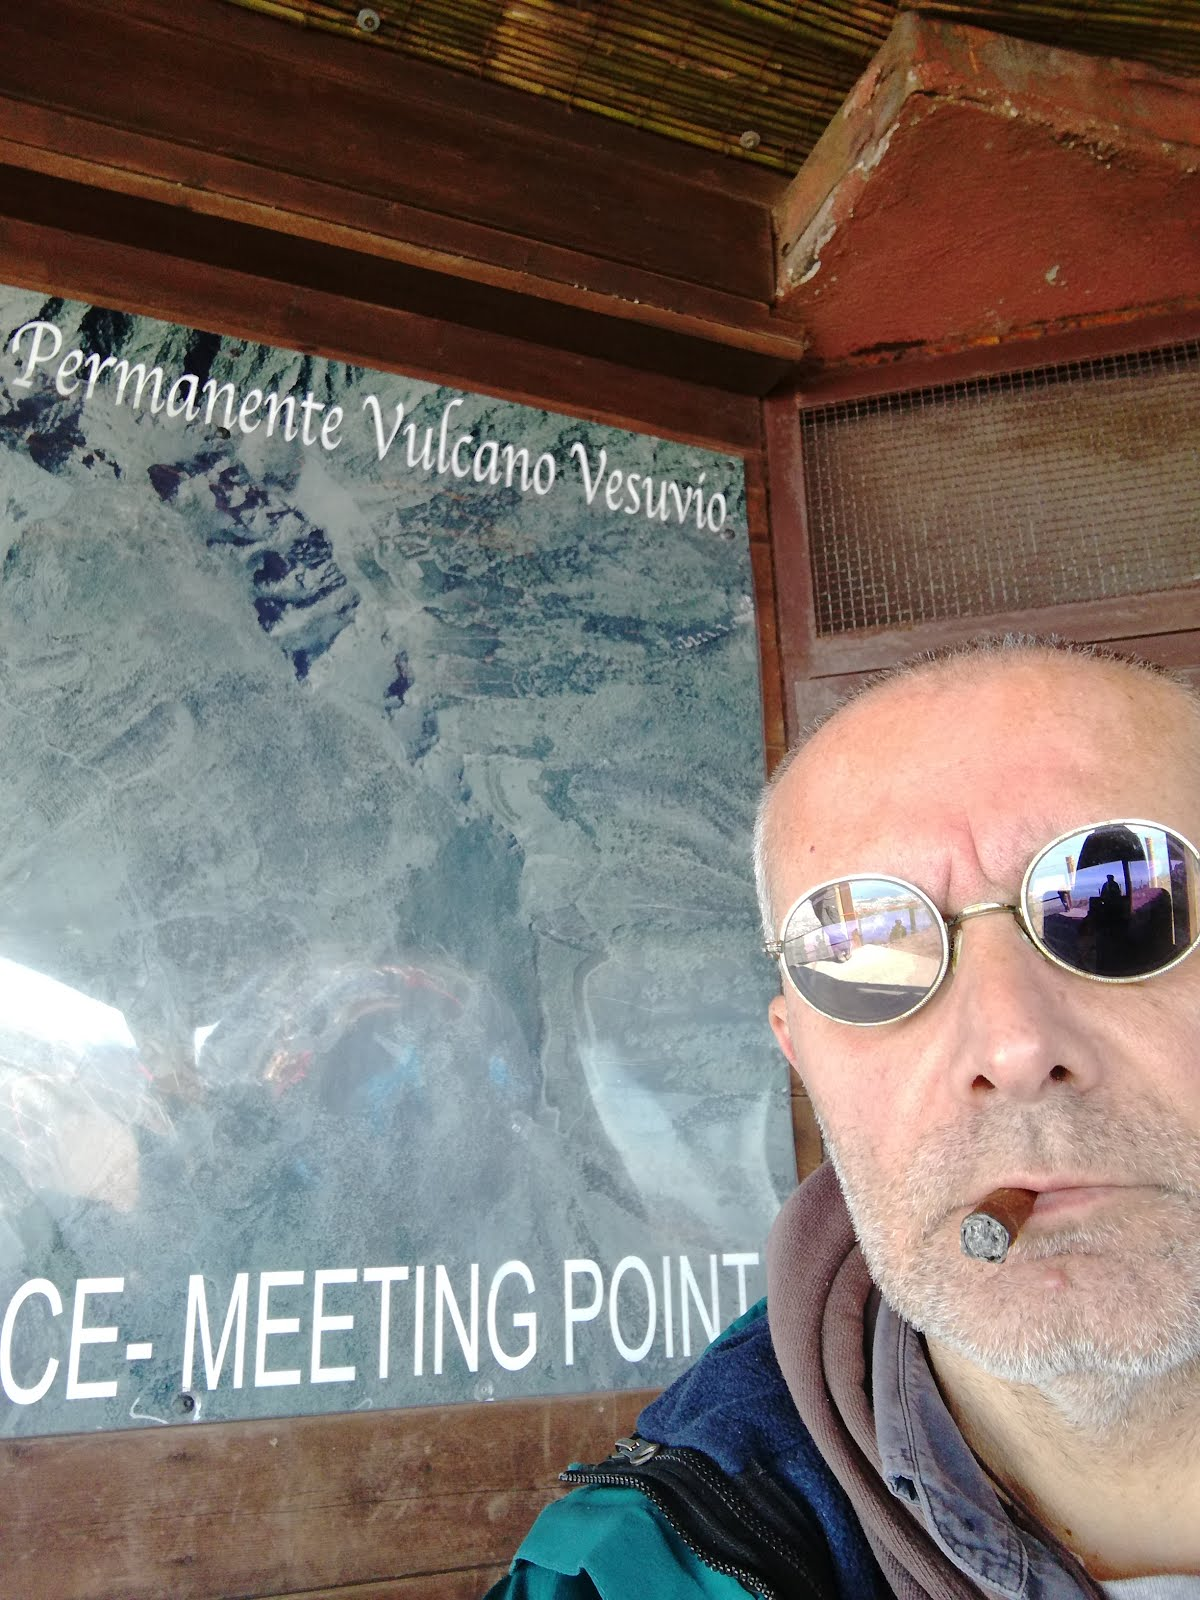 Meeting Point Guide Service Vesuvius